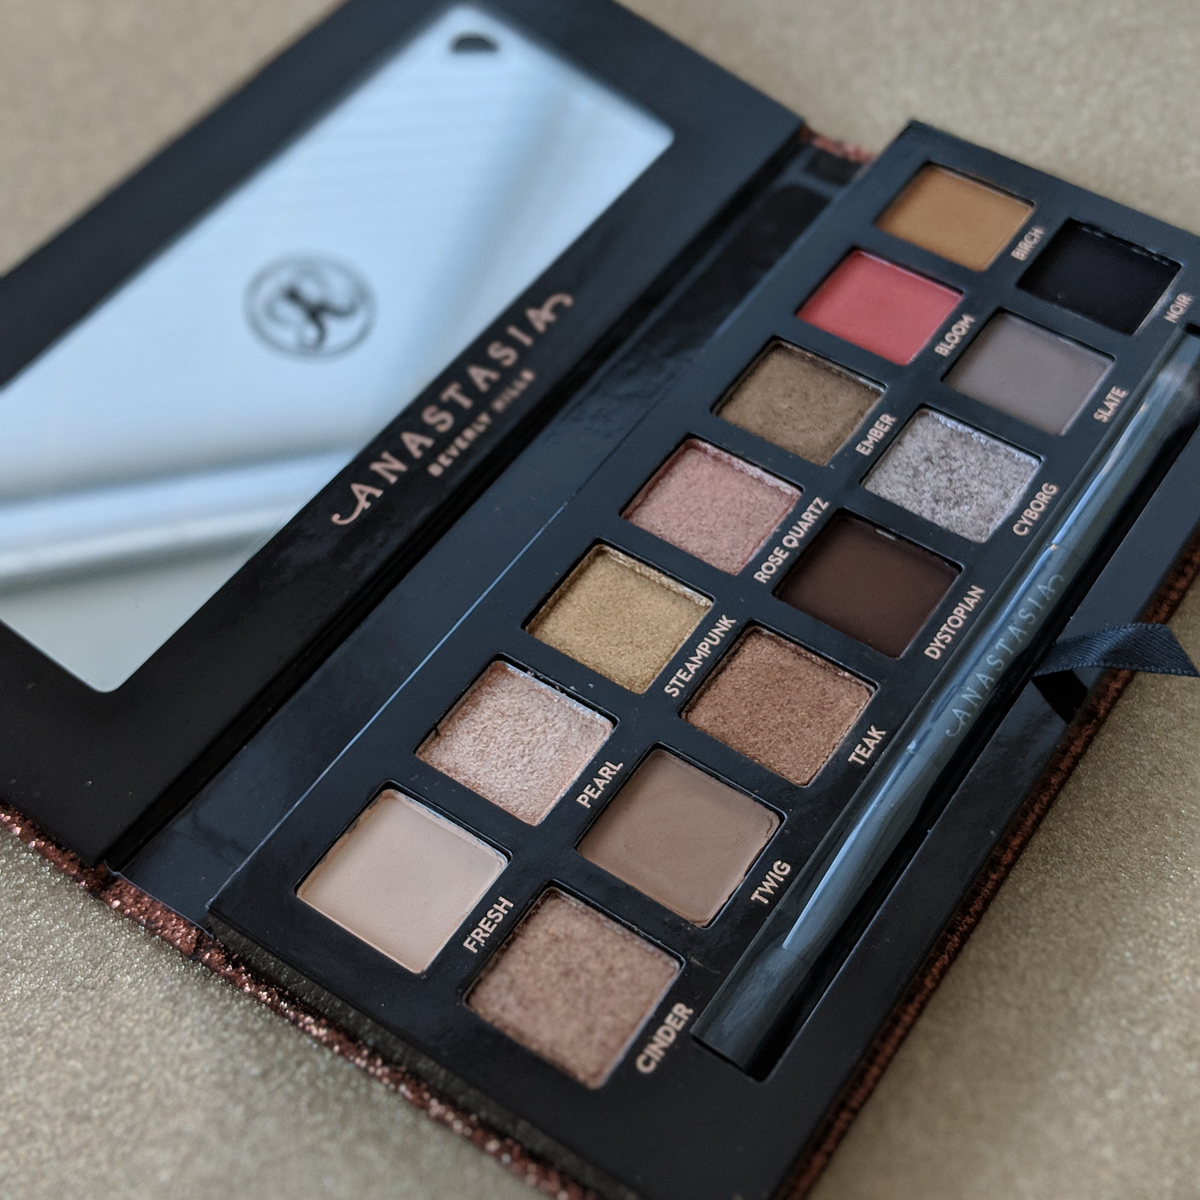 abh-sultry-eyeshadow-palette-review-front-2